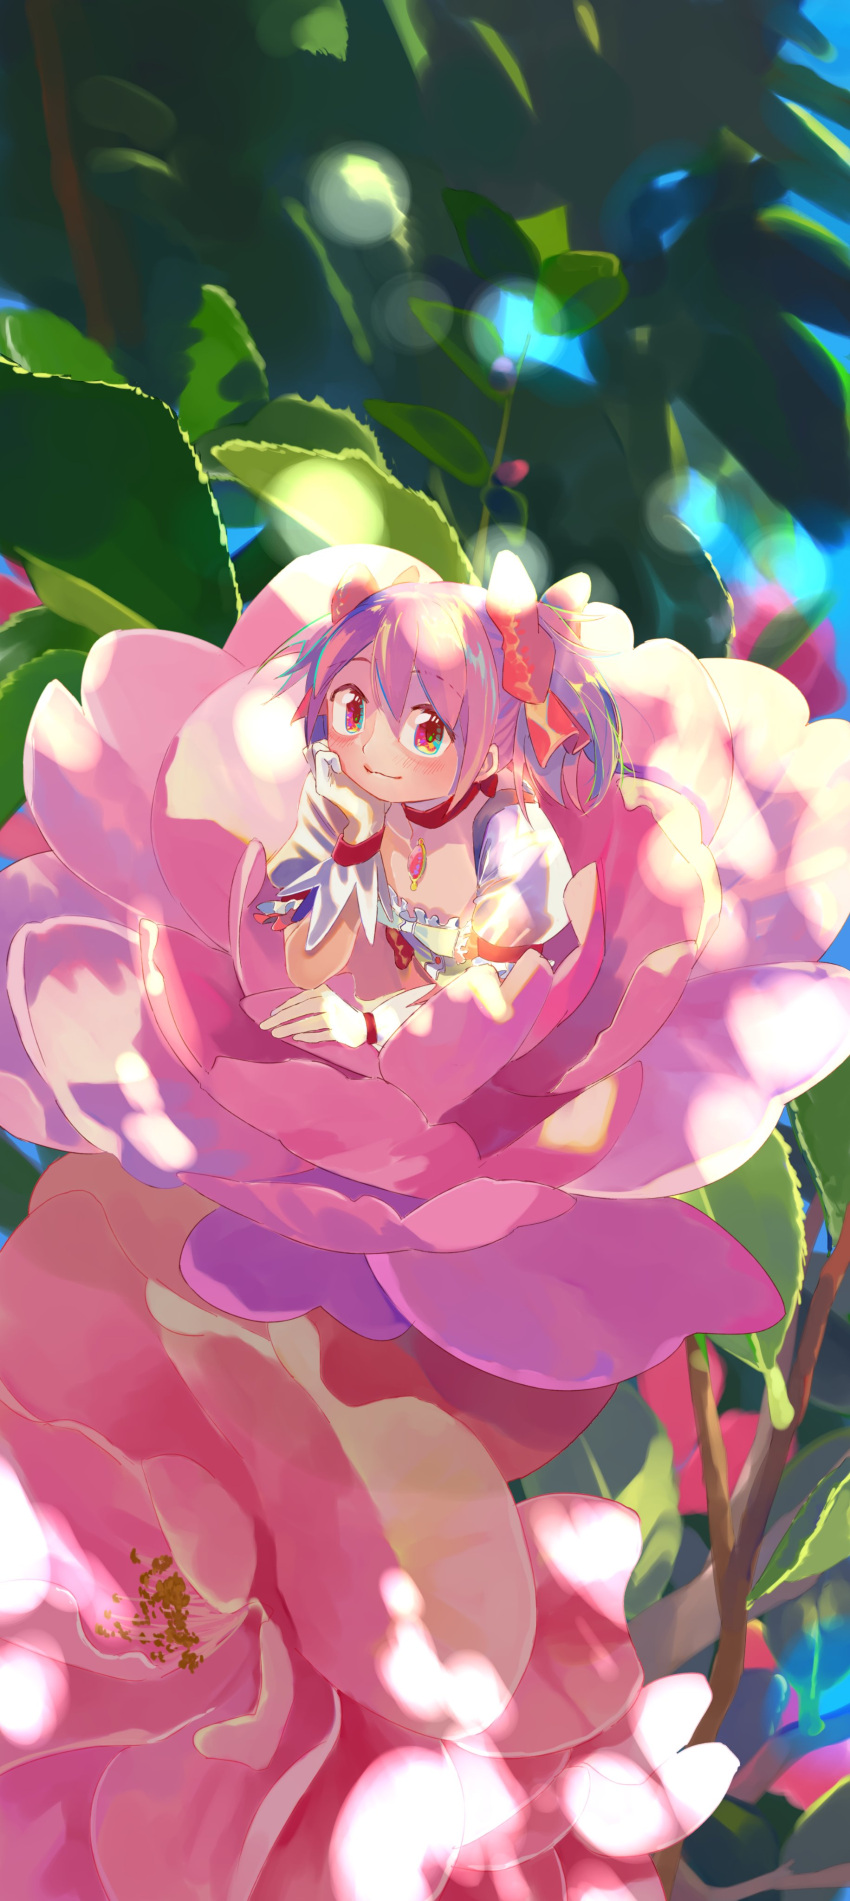 1girl absurdres aqua_eyes big_eyes blue_sky branch choker closed_mouth commentary_request dappled_sunlight day elbow_rest eyebrows_visible_through_hair flower flower_request frills gloves hair_ribbon happy head_rest highres kaname_madoka leaf light_blush light_smile looking_at_viewer mahou_shoujo_madoka_magica minigirl multicolored multicolored_eyes orange_eyes outdoors oversized_flowers oversized_object pink_eyes pink_flower pink_ribbon puffy_short_sleeves puffy_sleeves red_choker red_eyes red_neckwear ribbon sate_(ryu_ryu_1212m) shiny shiny_hair short_sleeves short_twintails sky solo soul_gem sunlight tareme twintails violet_eyes white_gloves wide_shot yellow_eyes